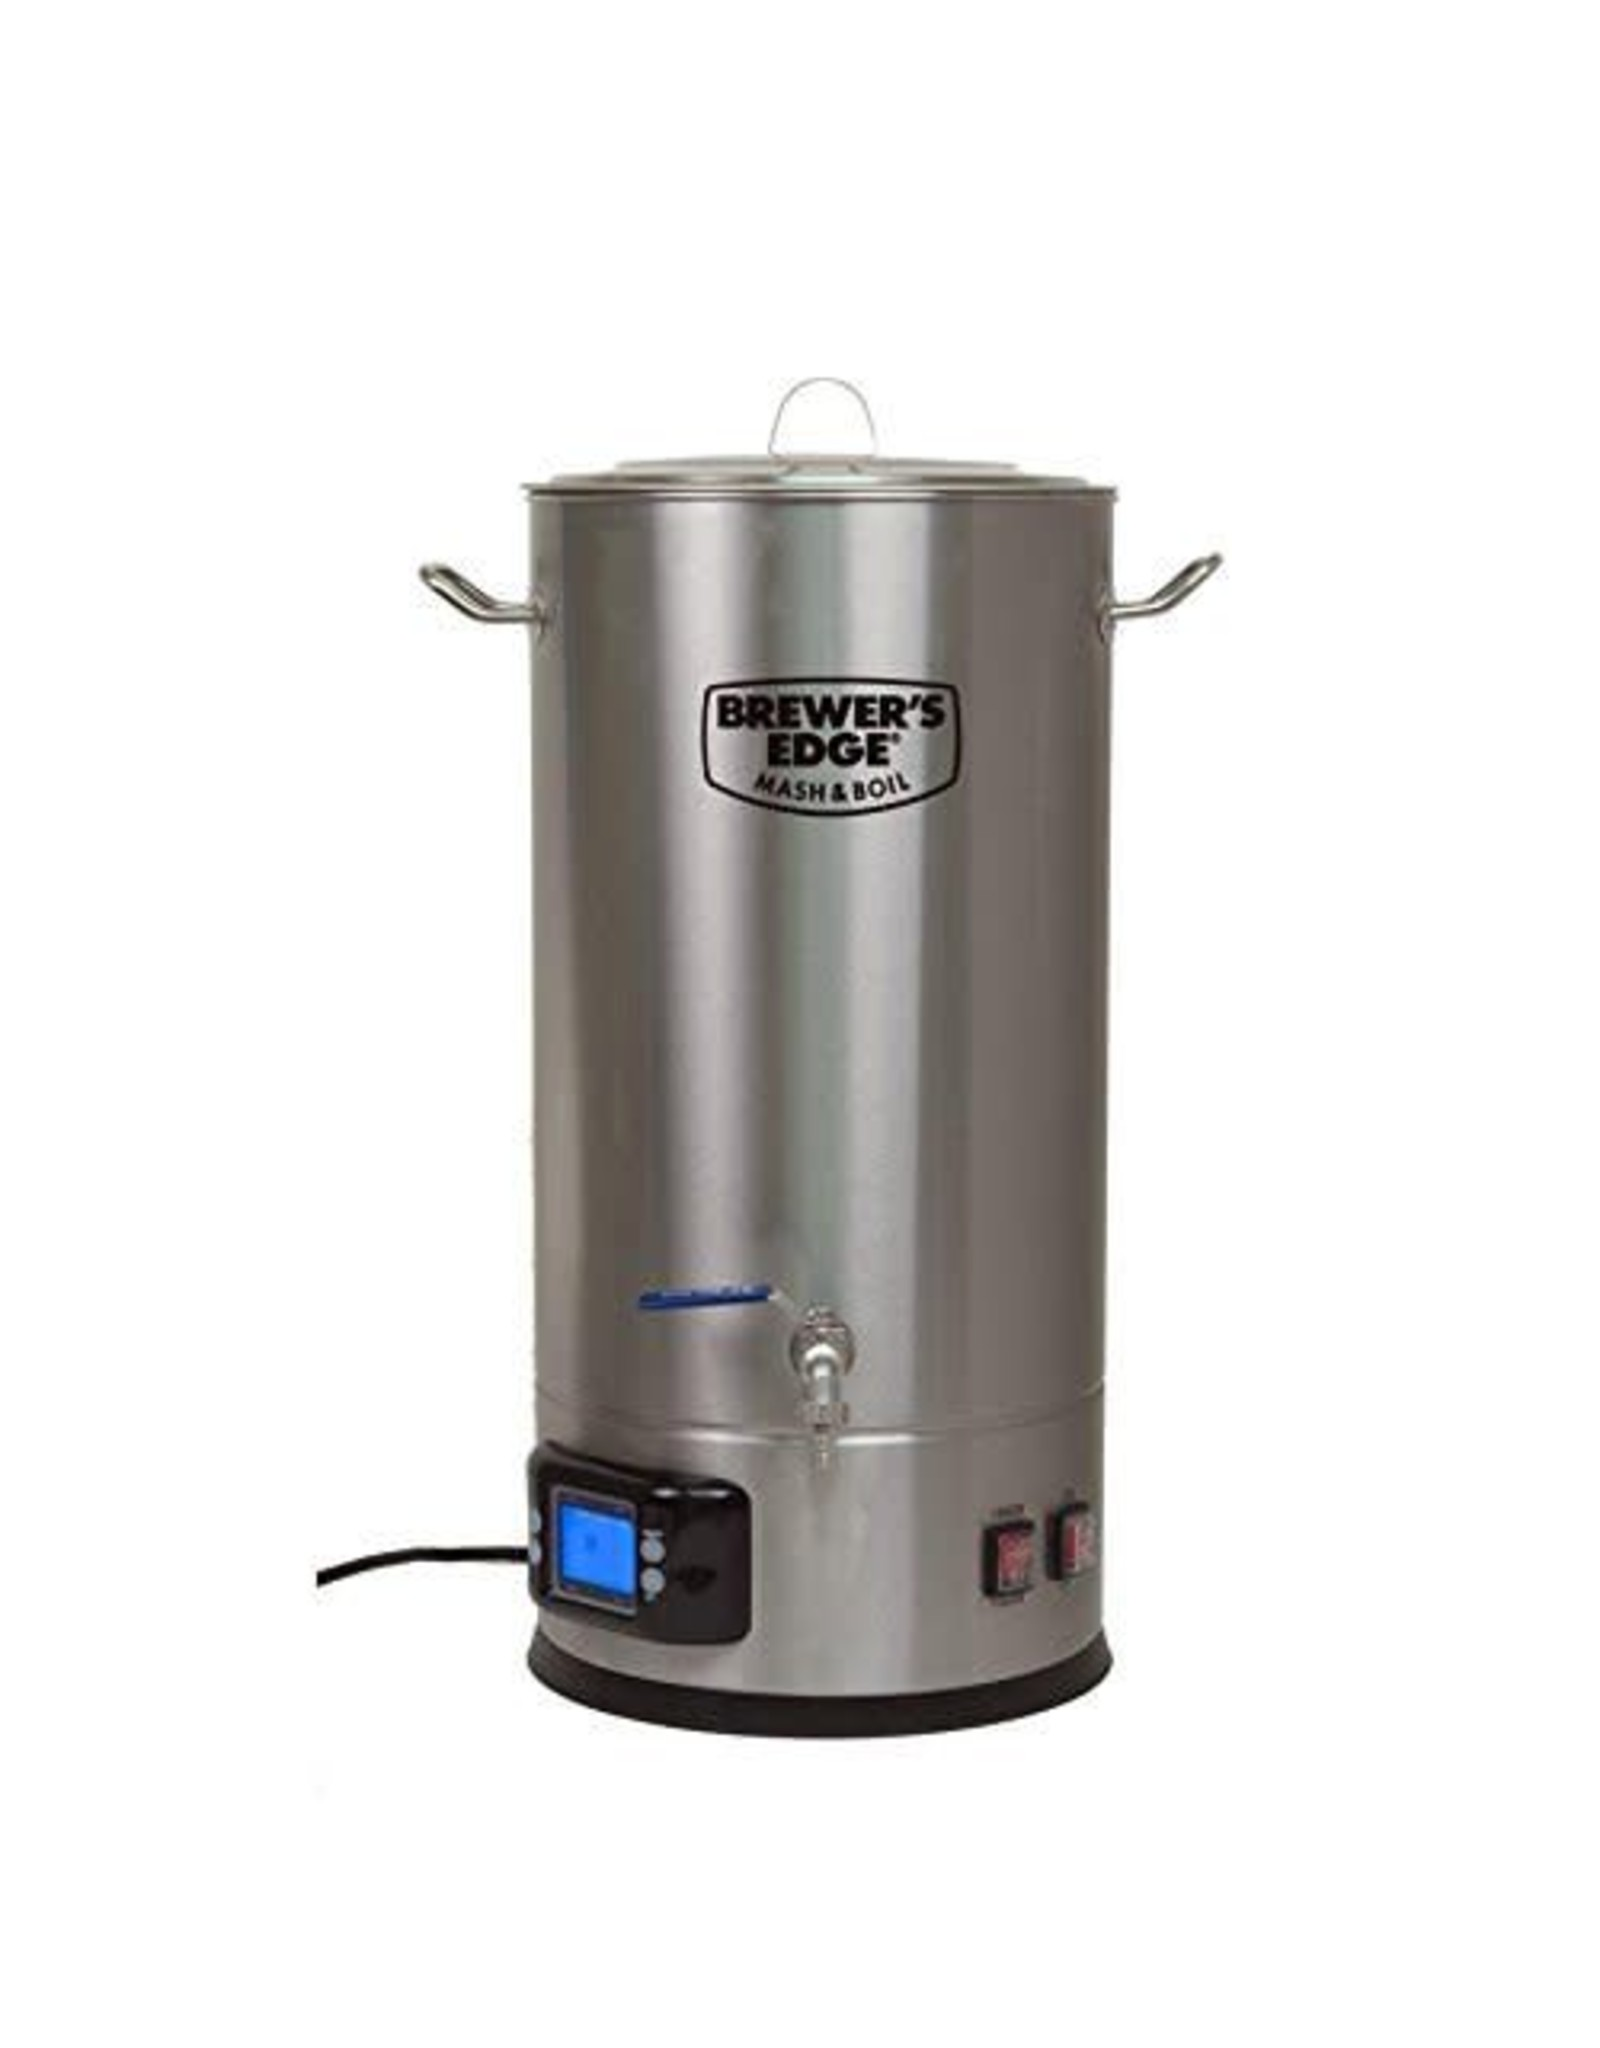 Brewer's Edge Mash and Boil mnb